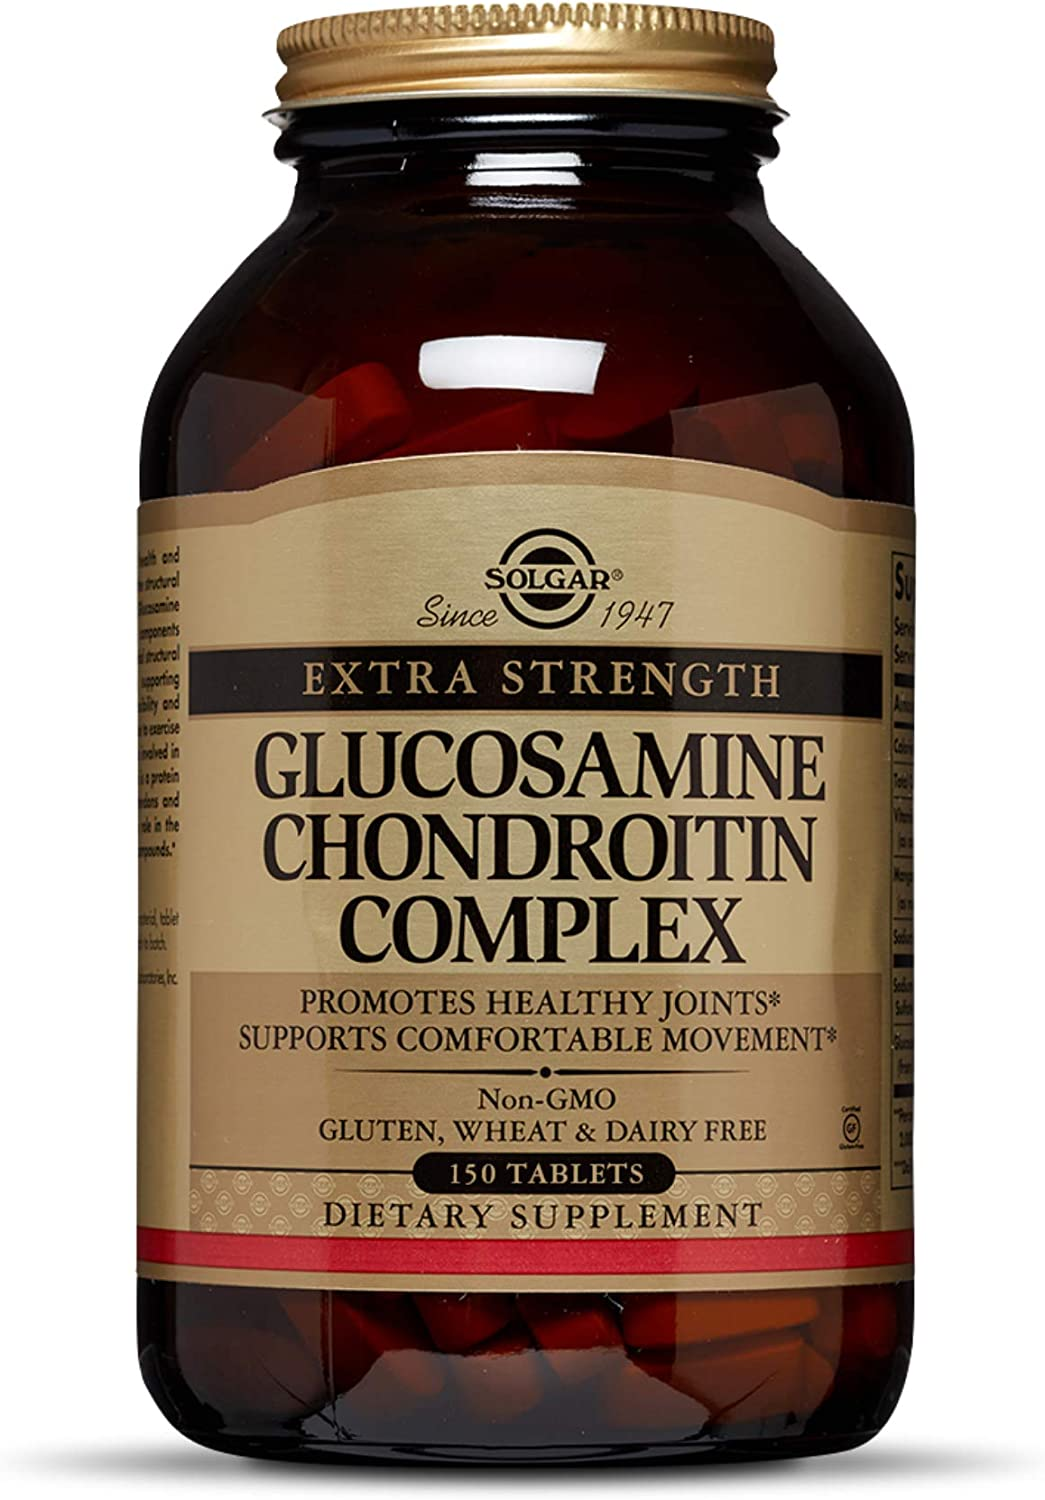 Solgar Extra Strength Glucosamine Chondroitin Complex, 150 Tablets - Promotes Healthy Joints - Supports Comfortable Movement - Non-GMO, Gluten Free, Dairy Free - 50 Servings